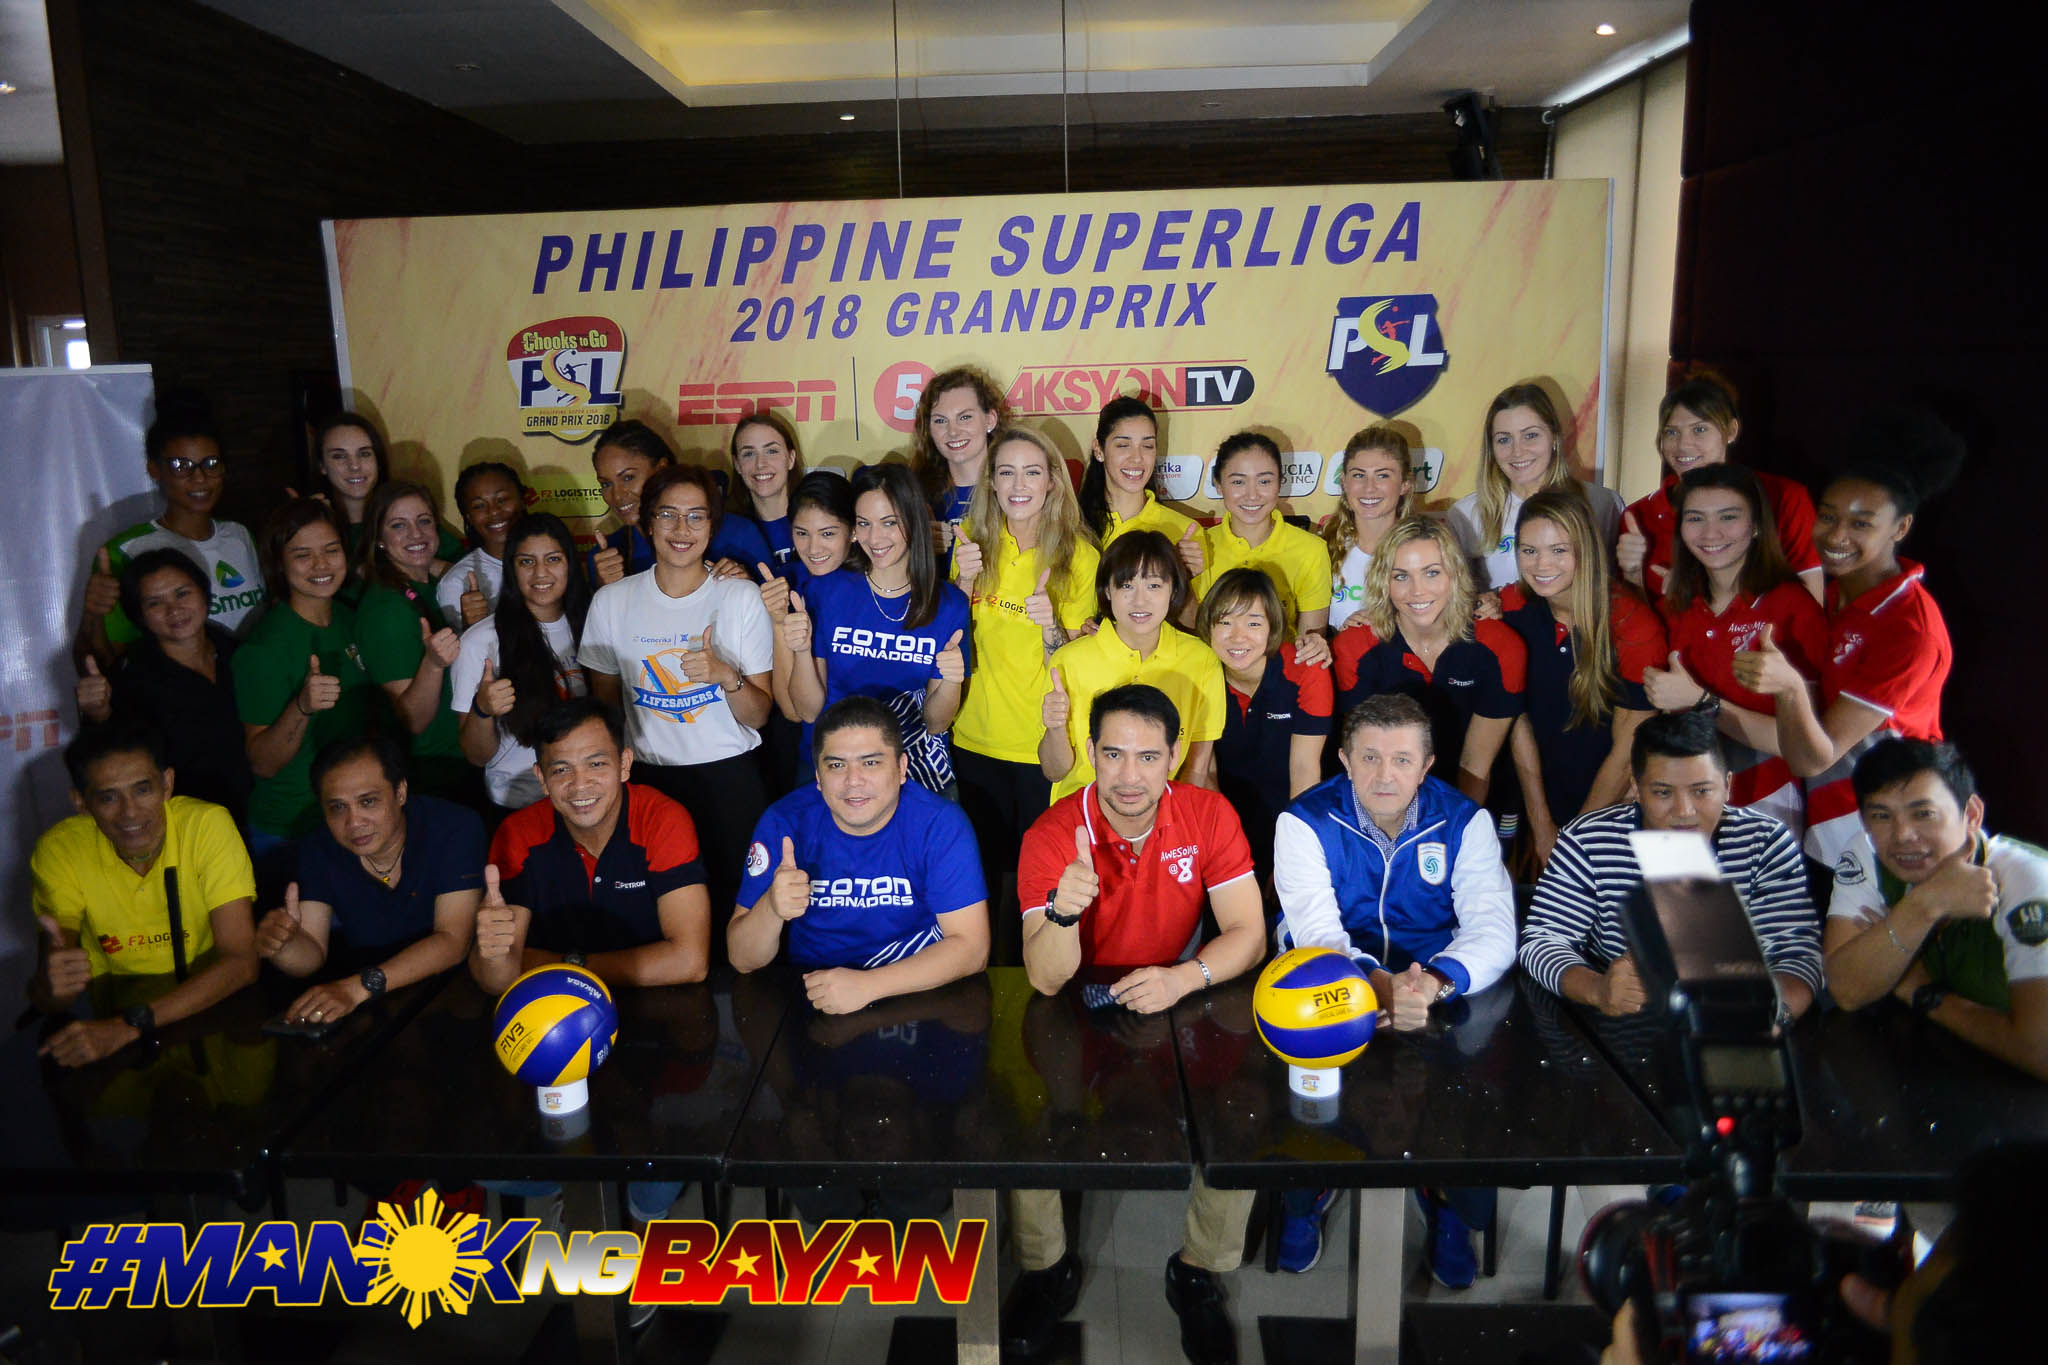 Philippine Sports News - Tiebreaker Times Imports ready to usher in 2018 PSL Season News PSL Volleyball  Tats Suzara Sta. Lucia Lady Realtors SMART Prepaid Giga Hitters Philip Juico Petron Blaze Spikers Generika-Ayala Lifesavers Foton Tornadoes F2 Logistics Cargo Movers Cocolife Asset Managers Cignal HD Spikers 2018 PSL Season 2018 PSL Grand Prix